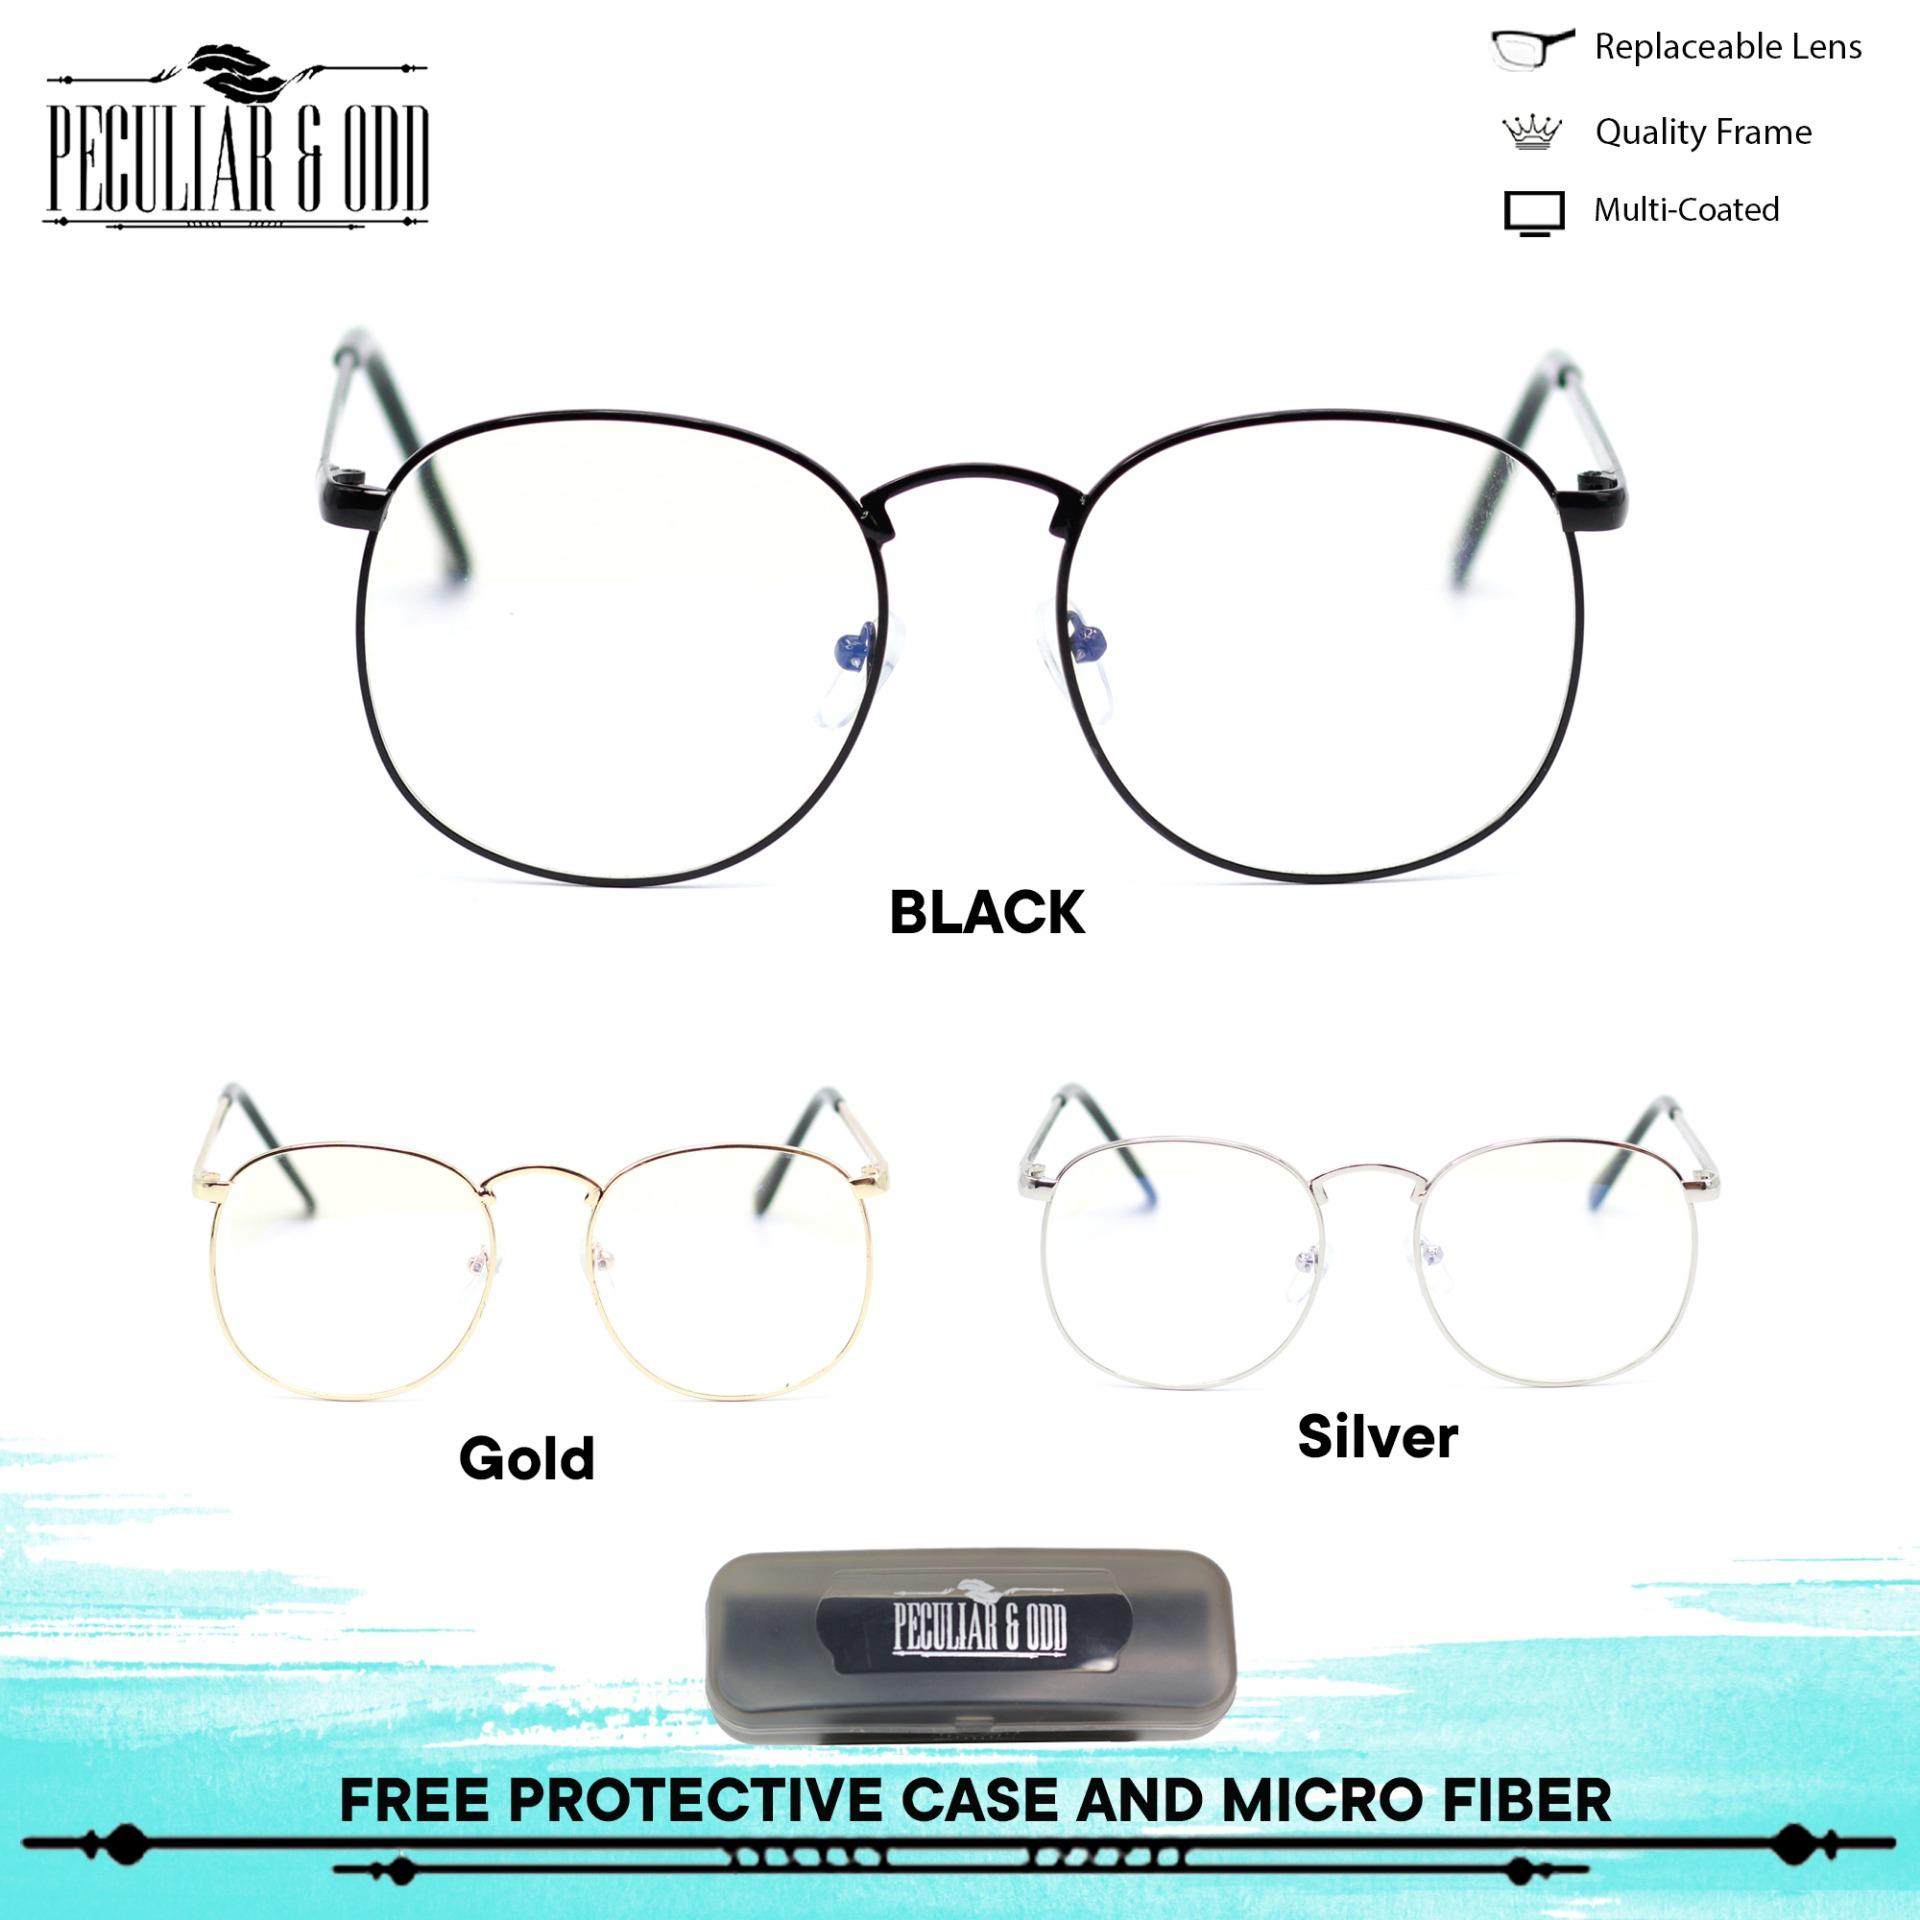 4b77a3e098 Peculiar Round Eyeglasses 8810 Antiradiation Lenses in Thin Metal Frame  Lightweight Replaceable Optical Lens Unisex Eyewear